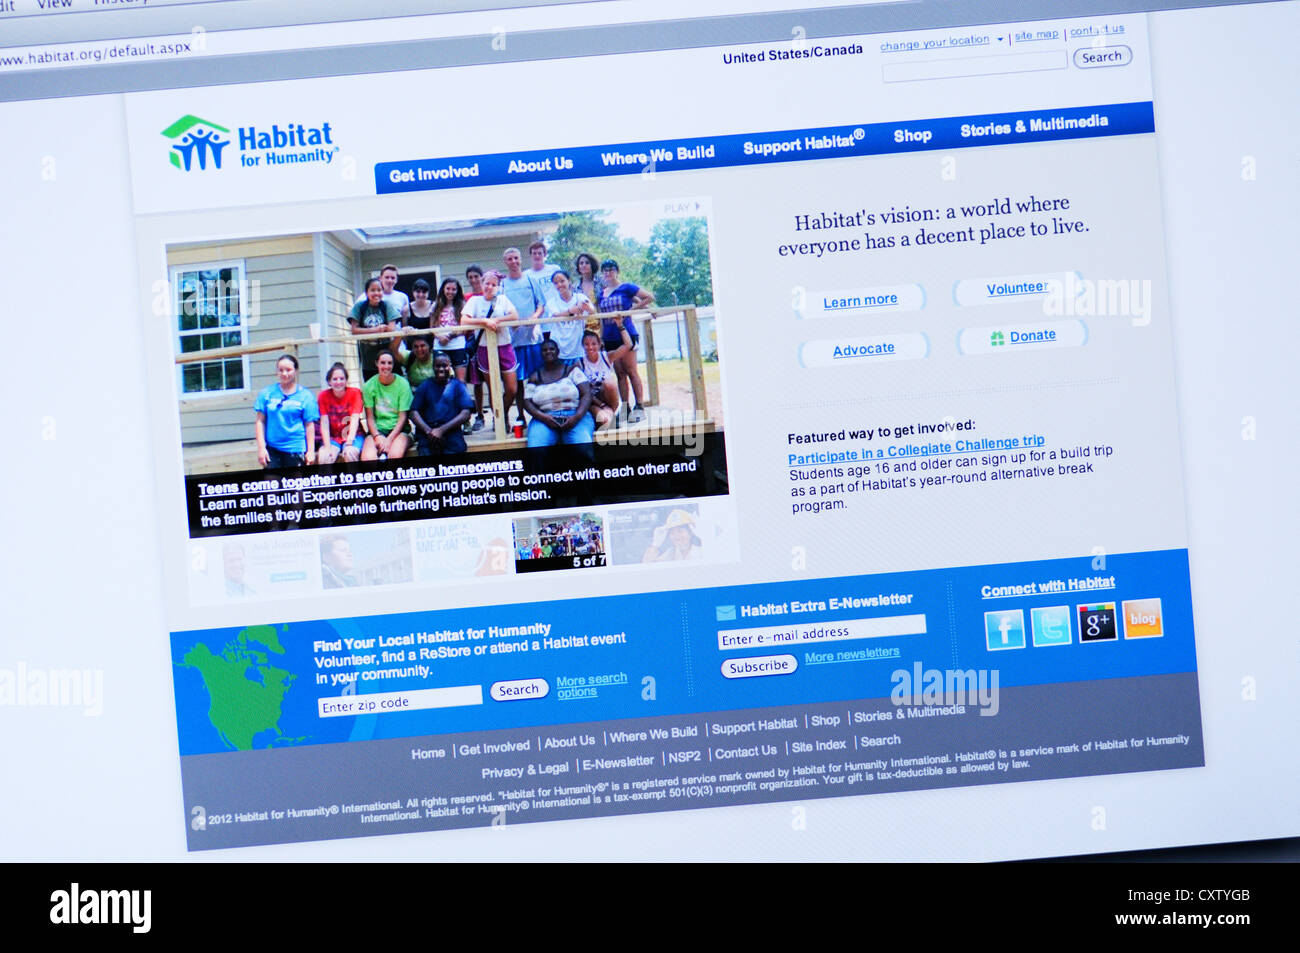 Habitat for Humanity website - nonprofit, ecumenical Christian housing organization building affordable houses for - Stock Image